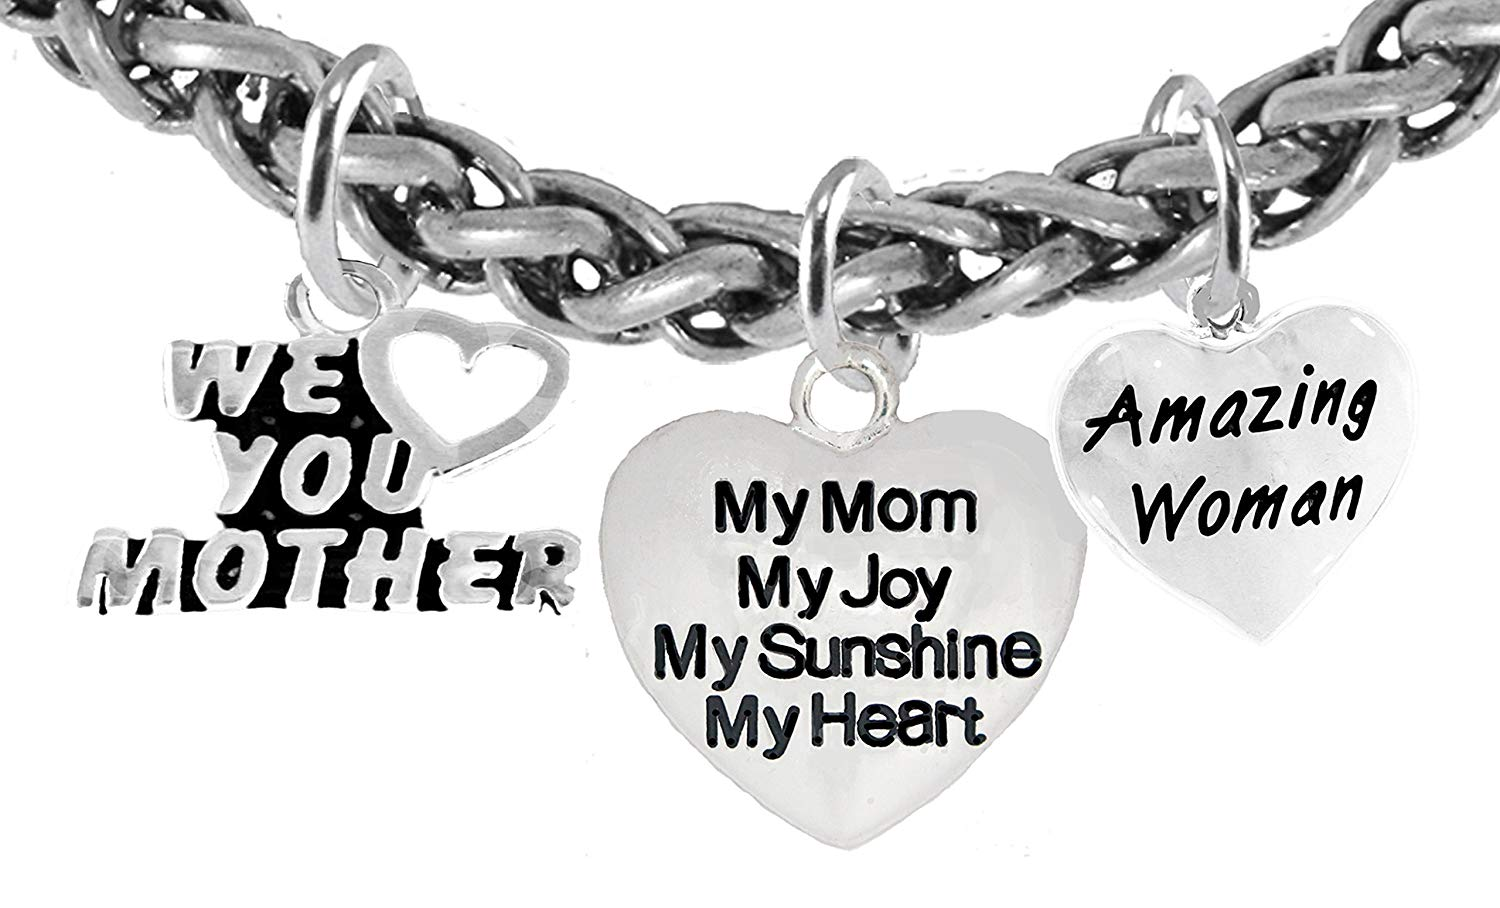 Cardinali Jewelry Mom,Worlds Greatest Mom.My Mom My Heart Safe-Nickel Free My Joy Hypoallergenic Bracelet Lead My Sunshine